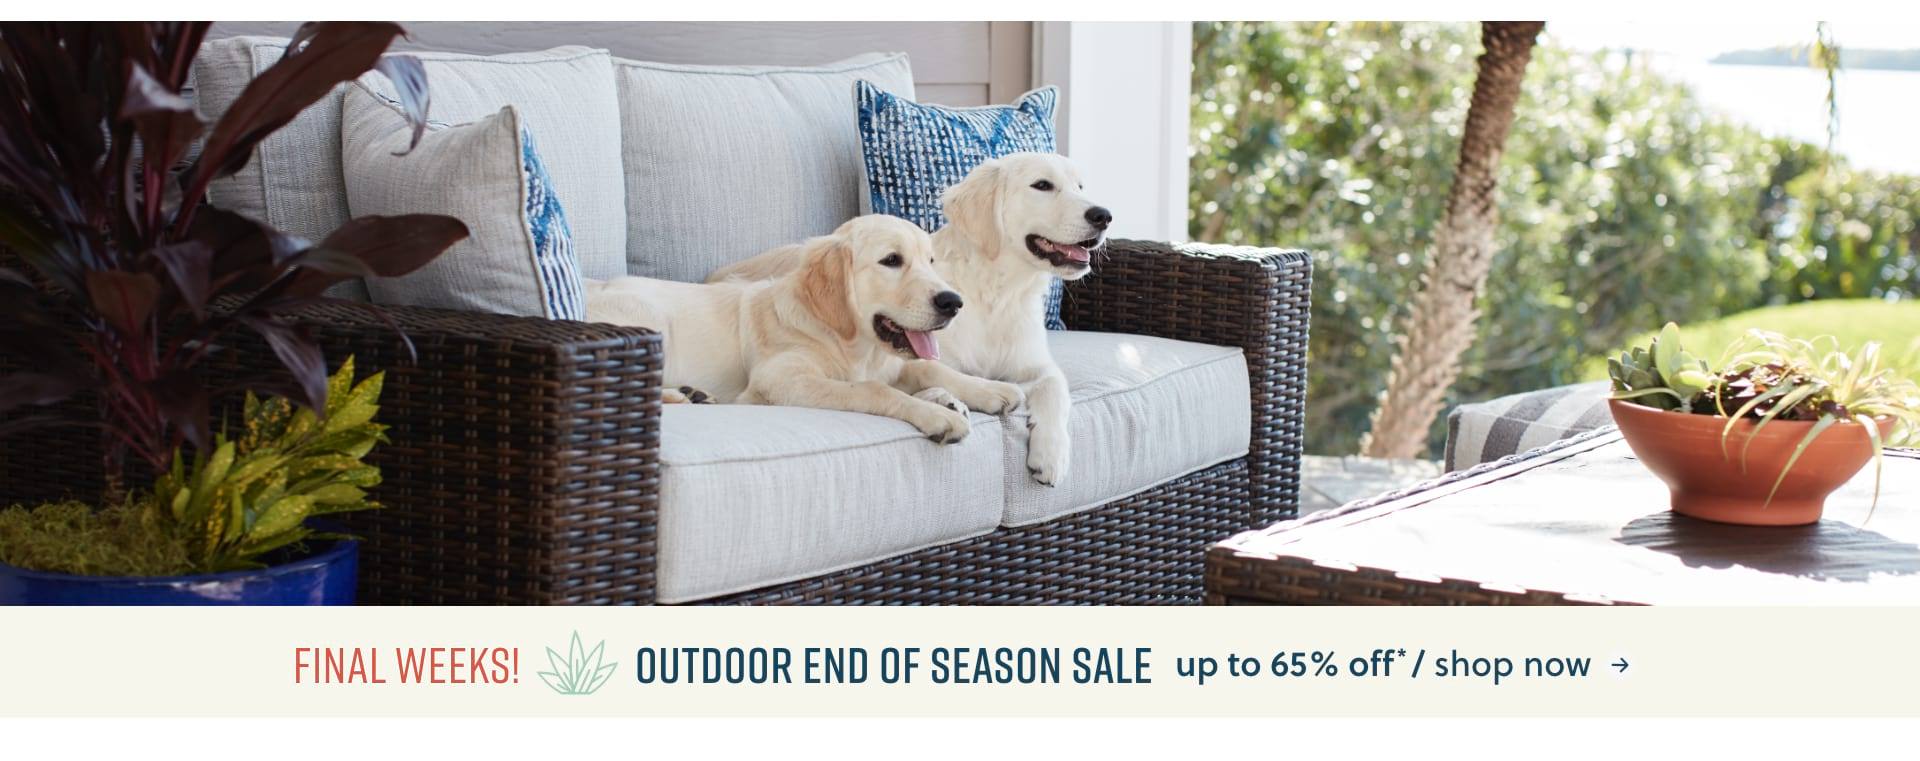 Outdoor Sale up to 65% off*